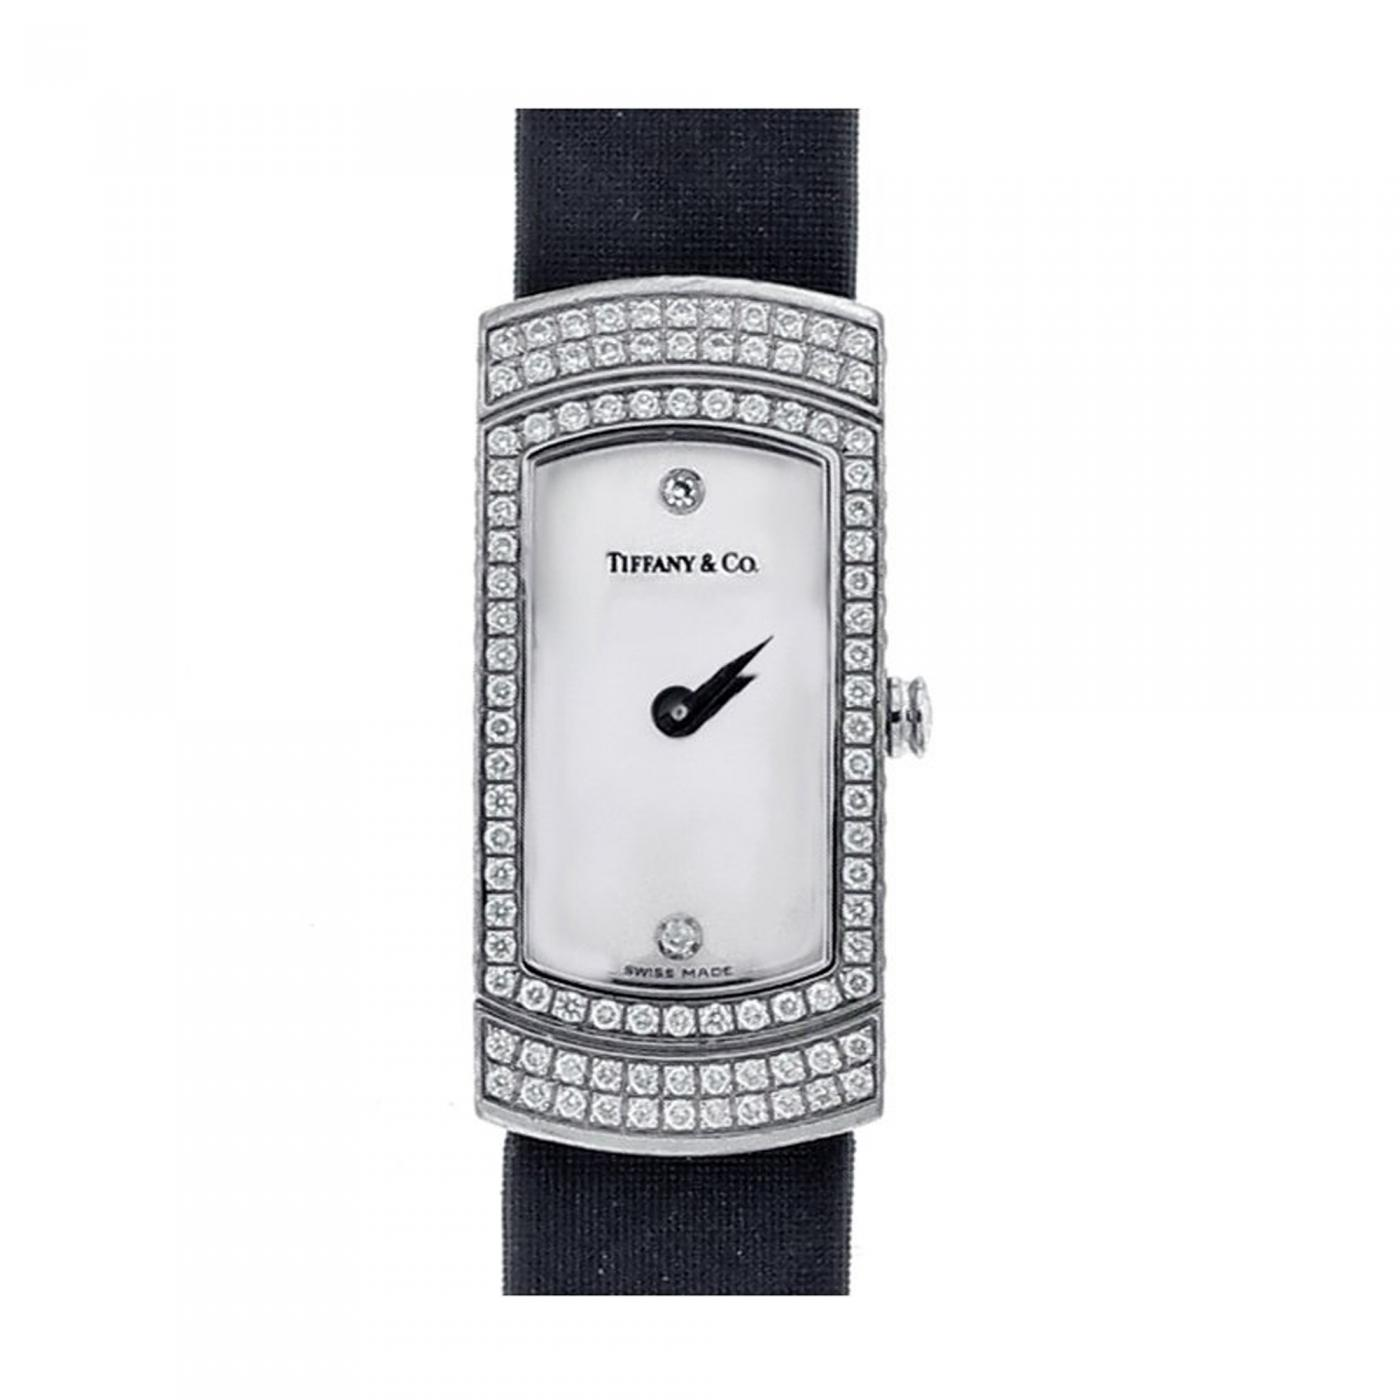 8be09301c3123 Tiffany and Co. - Tiffany & Co. Lady's Diamond Cocktail Watch